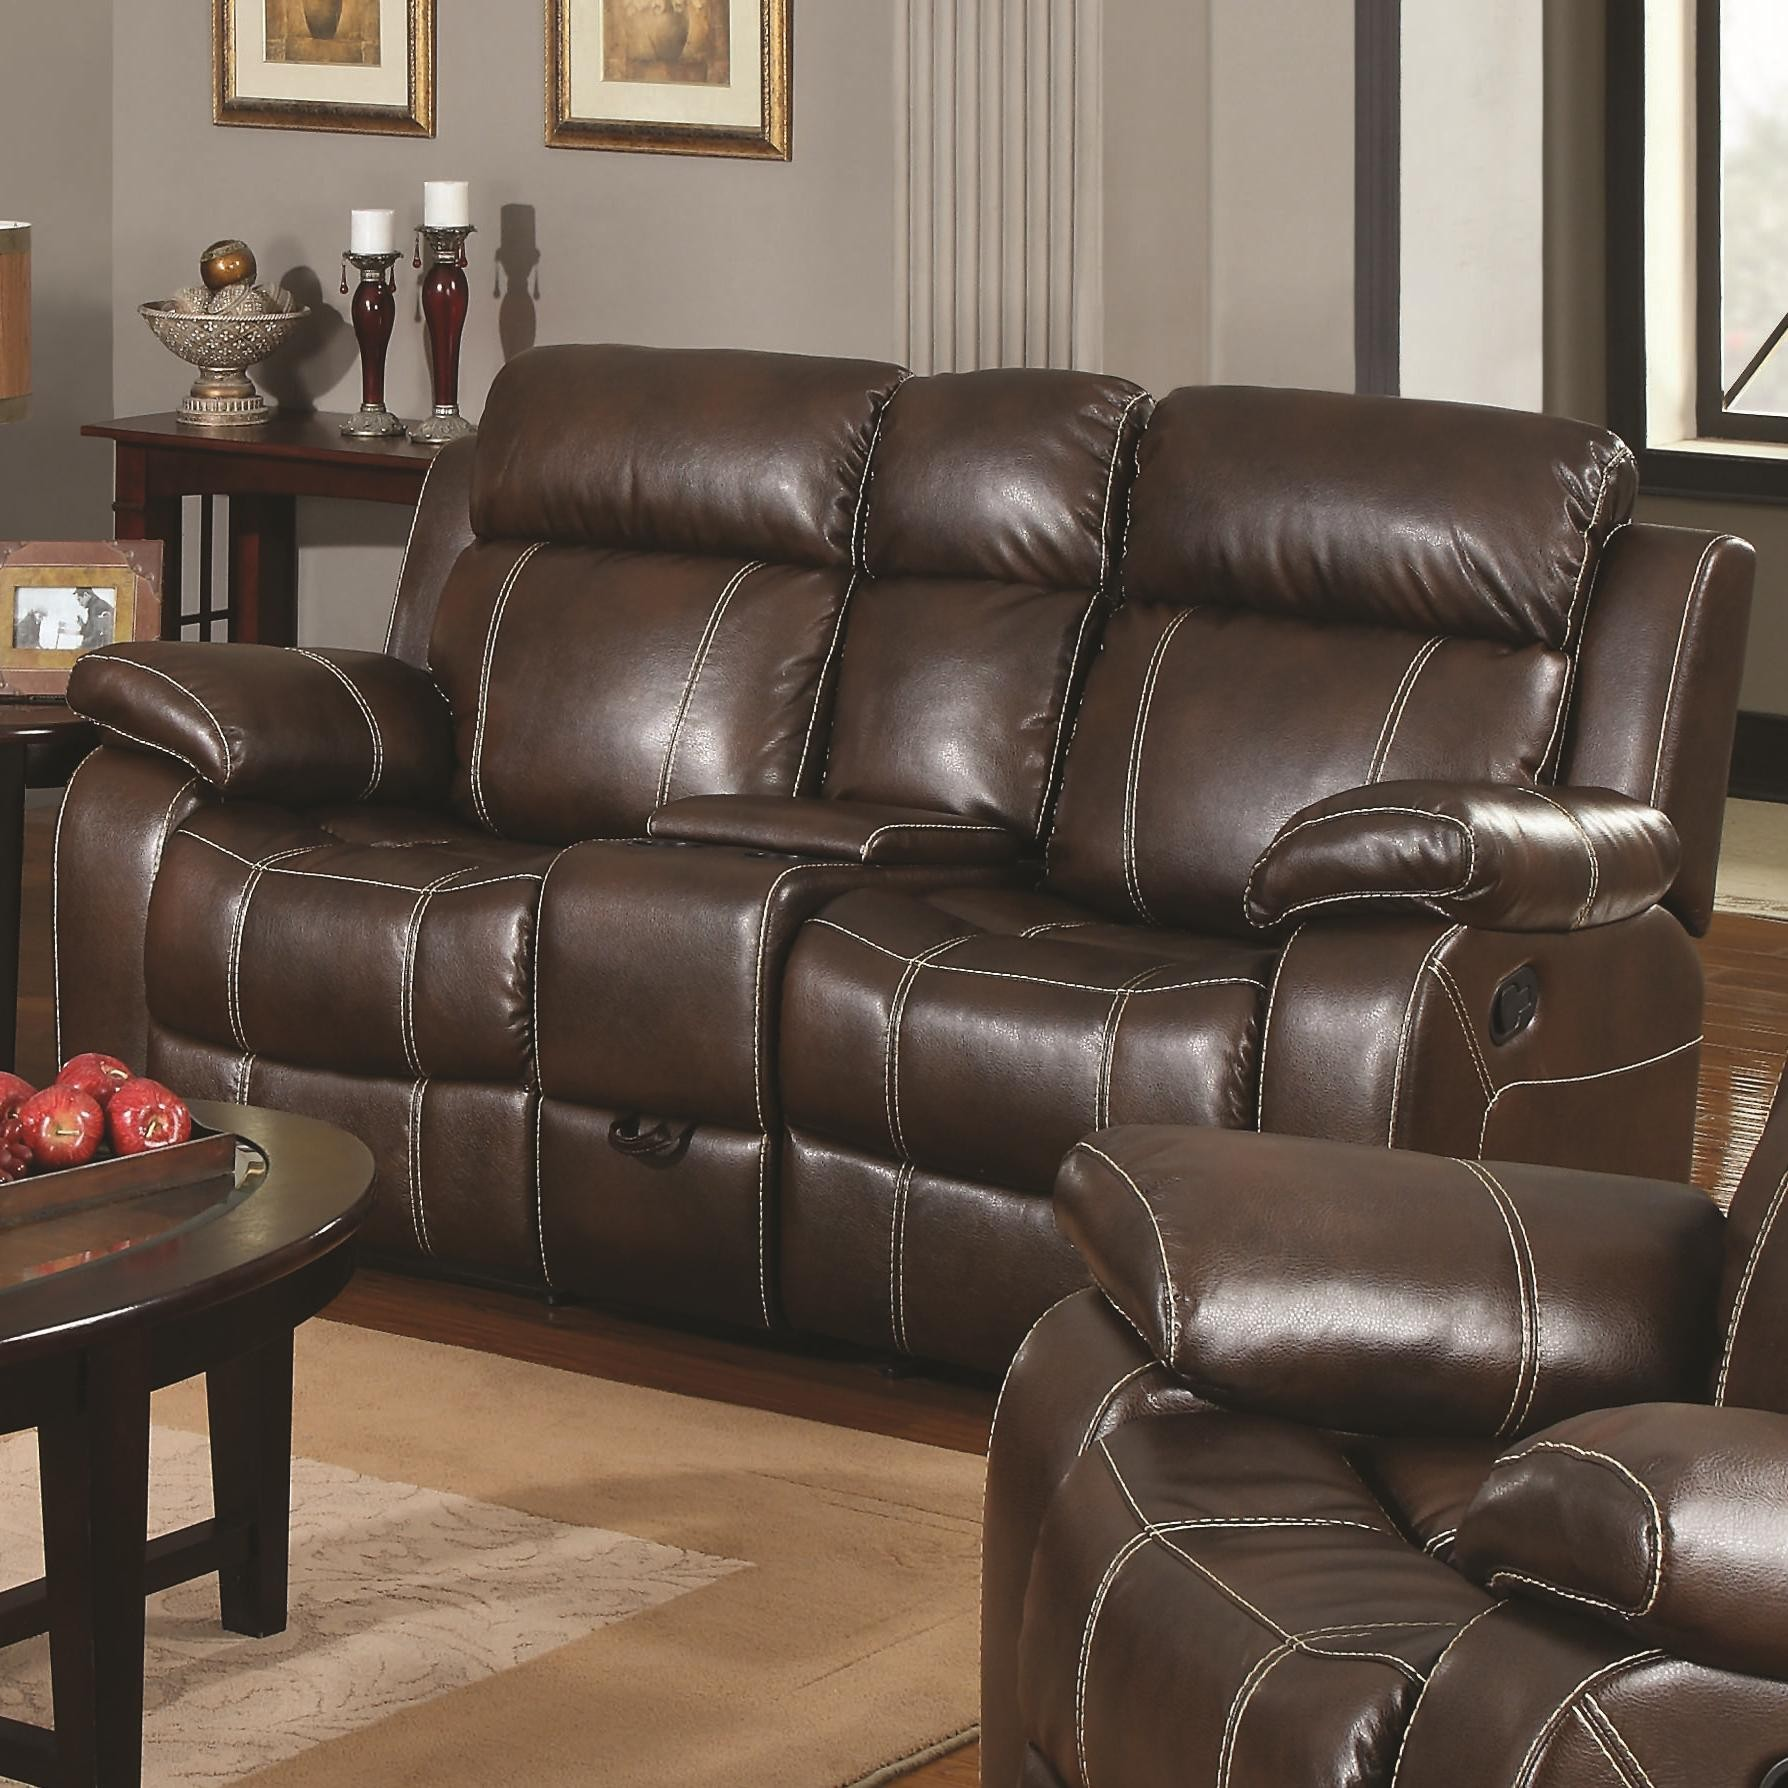 Myleene collection 603021 brown leather reclining sofa Reclining leather sofa and loveseat